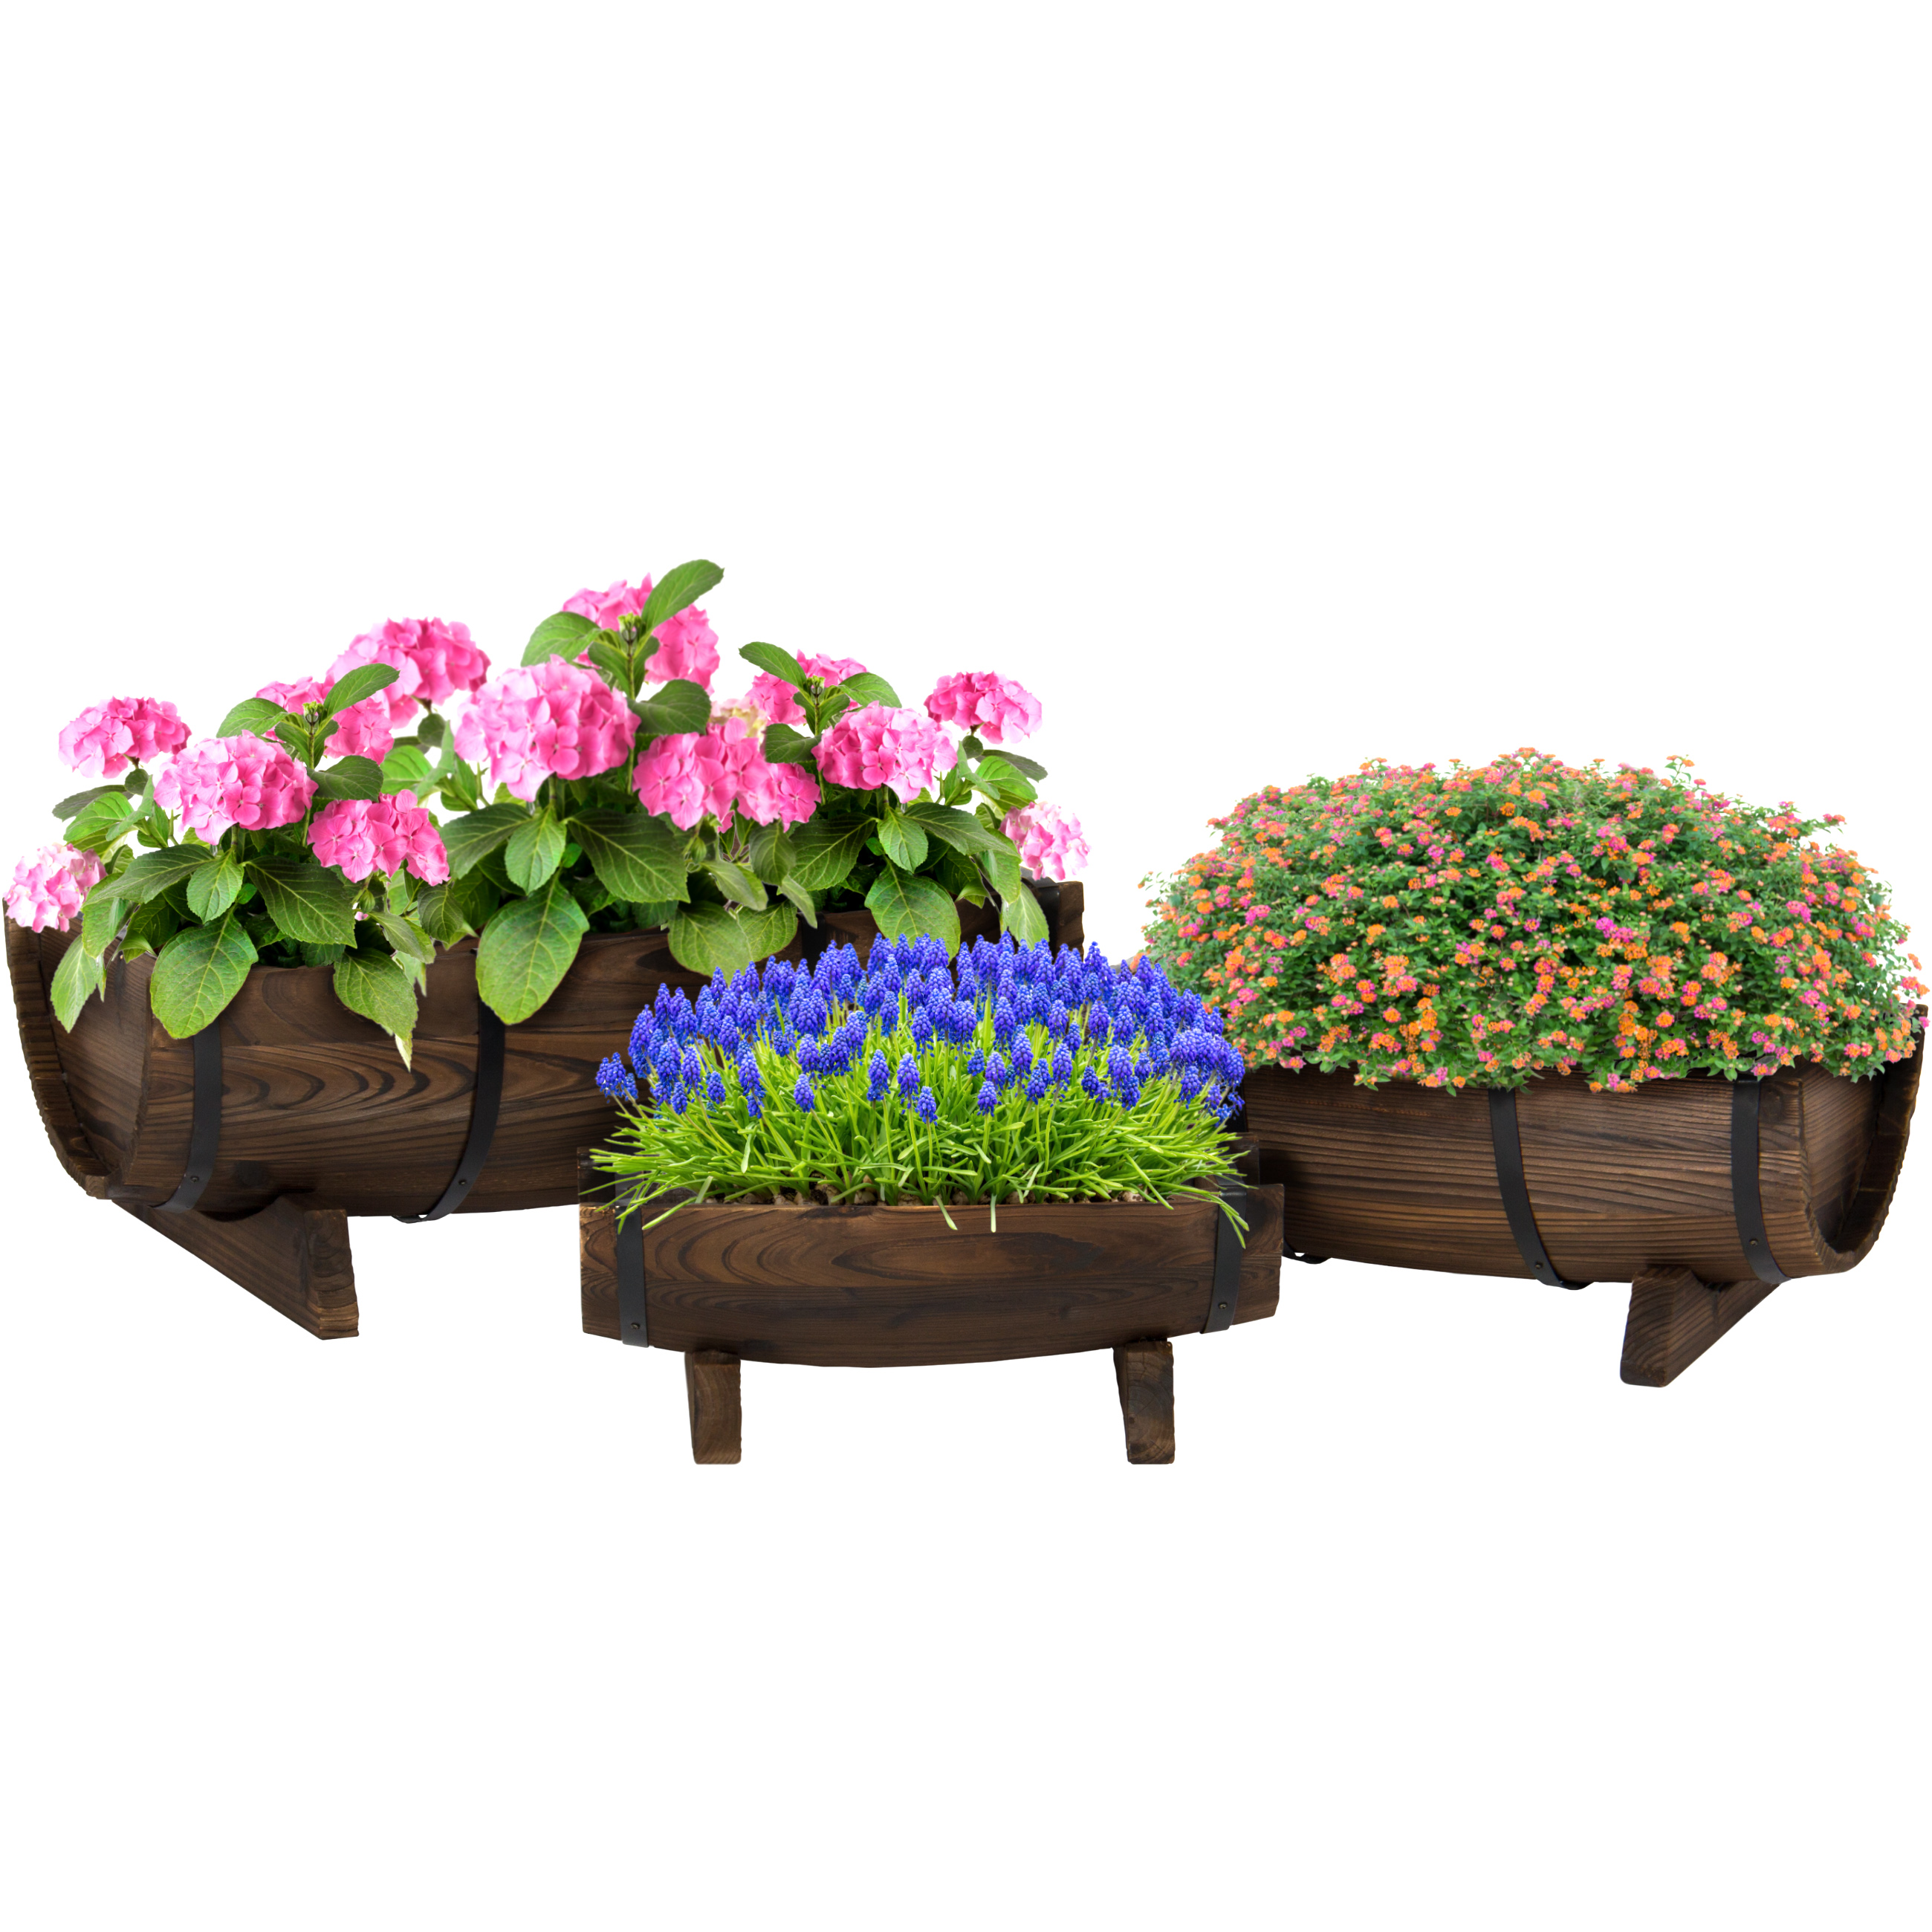 Best Choice Products Set of 3 Garden Decor Rustic Wood Half Barrel Planters - Brown